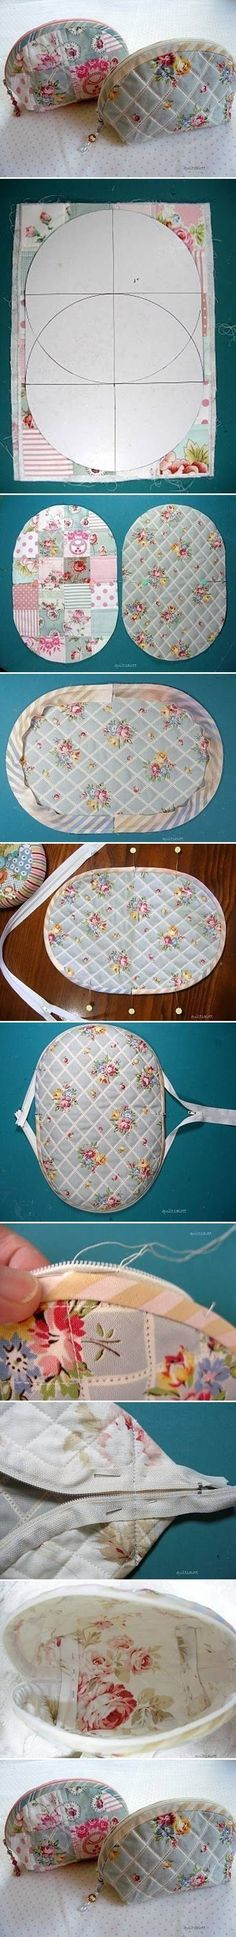 DIY Sew Makeup Bag… I'm thinking this is a great pattern idea for placemats. DIY Sew Makeup Bag… I Sewing Hacks, Sewing Tutorials, Sewing Crafts, Sewing Projects, Sewing Patterns, Diy Crafts, Free Tutorials, Diy Projects, Knitting Patterns